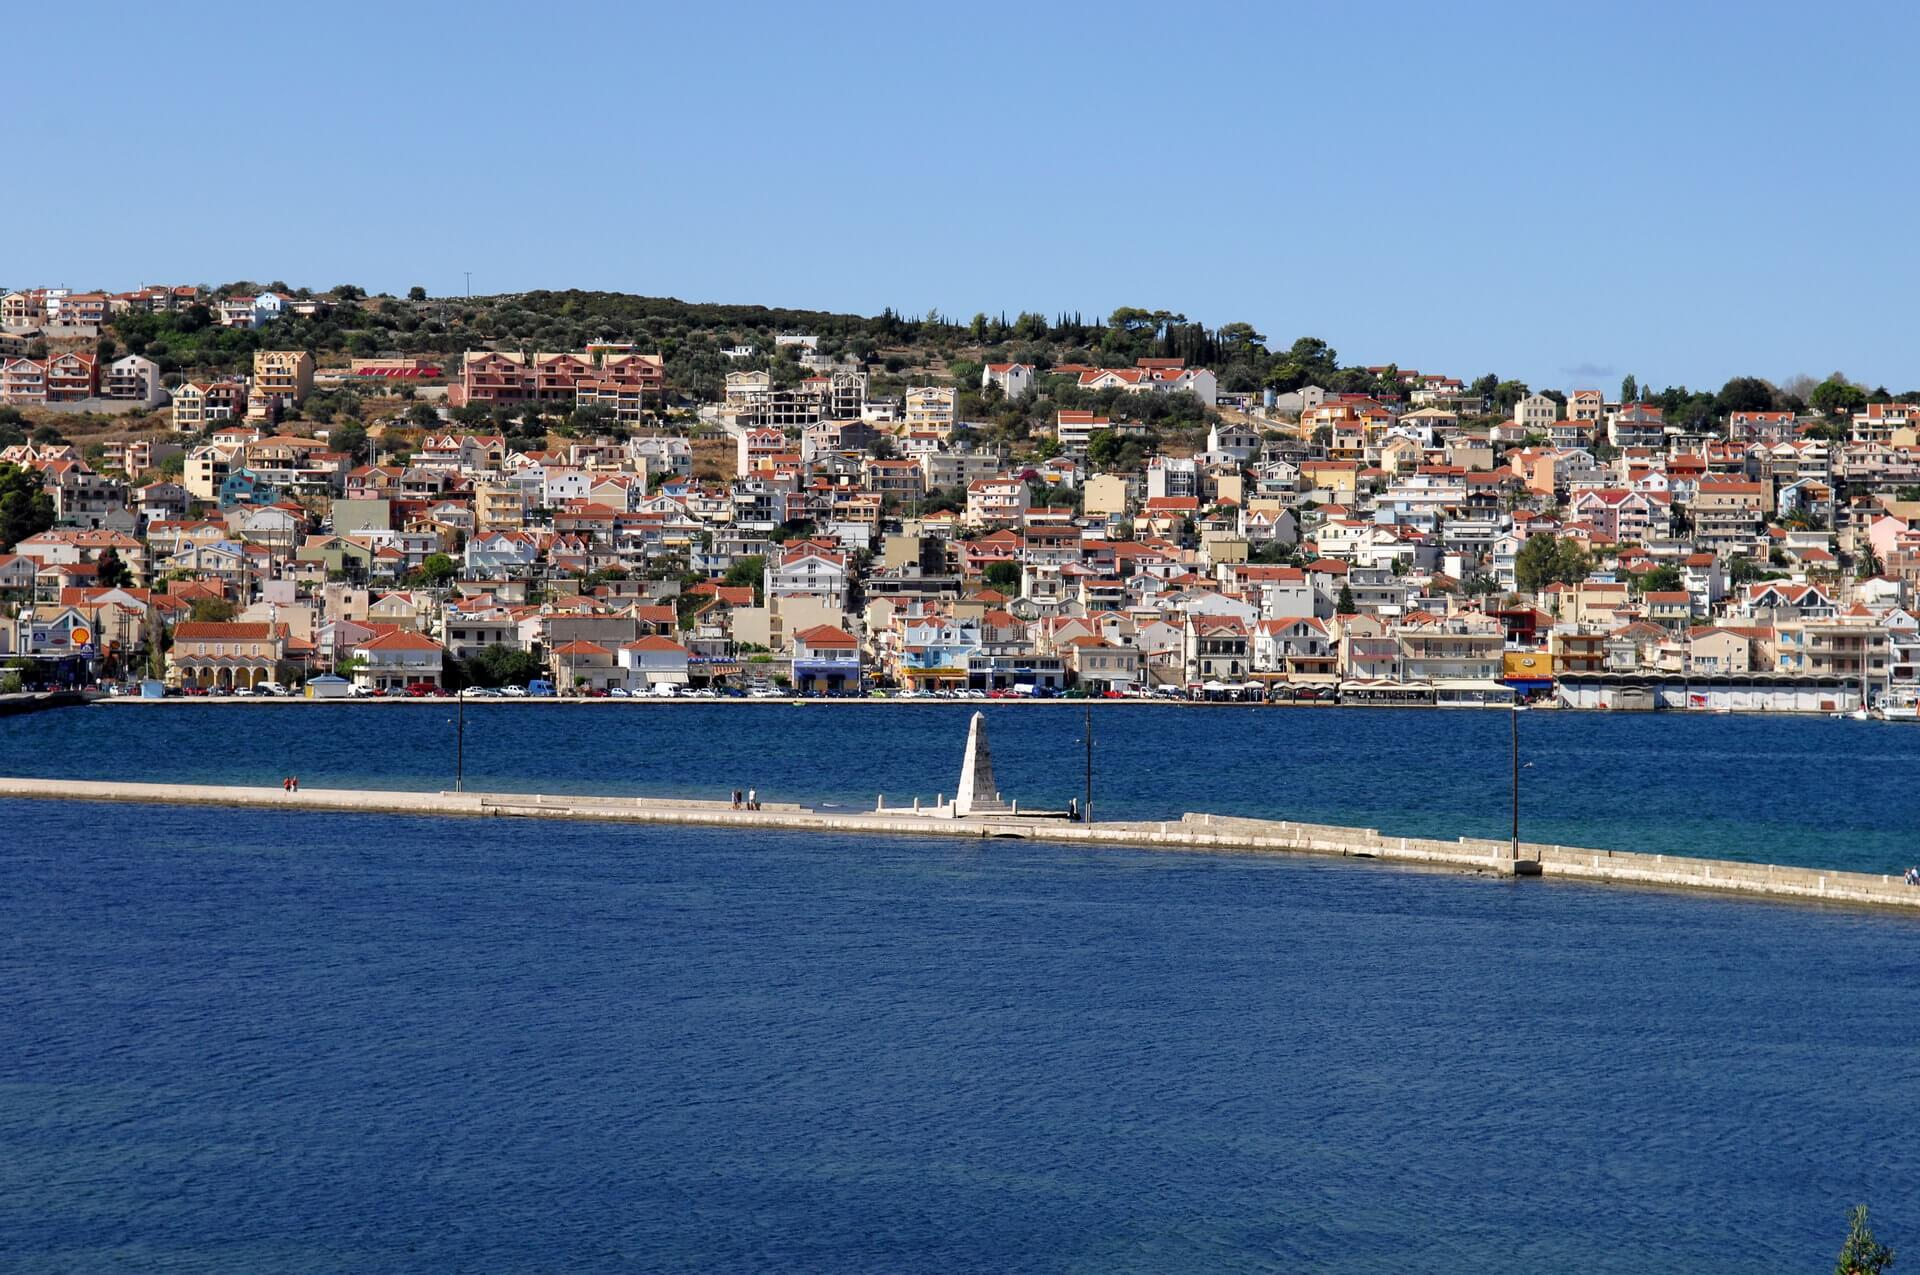 Deboset Bridge at Argostoli Kefalonia